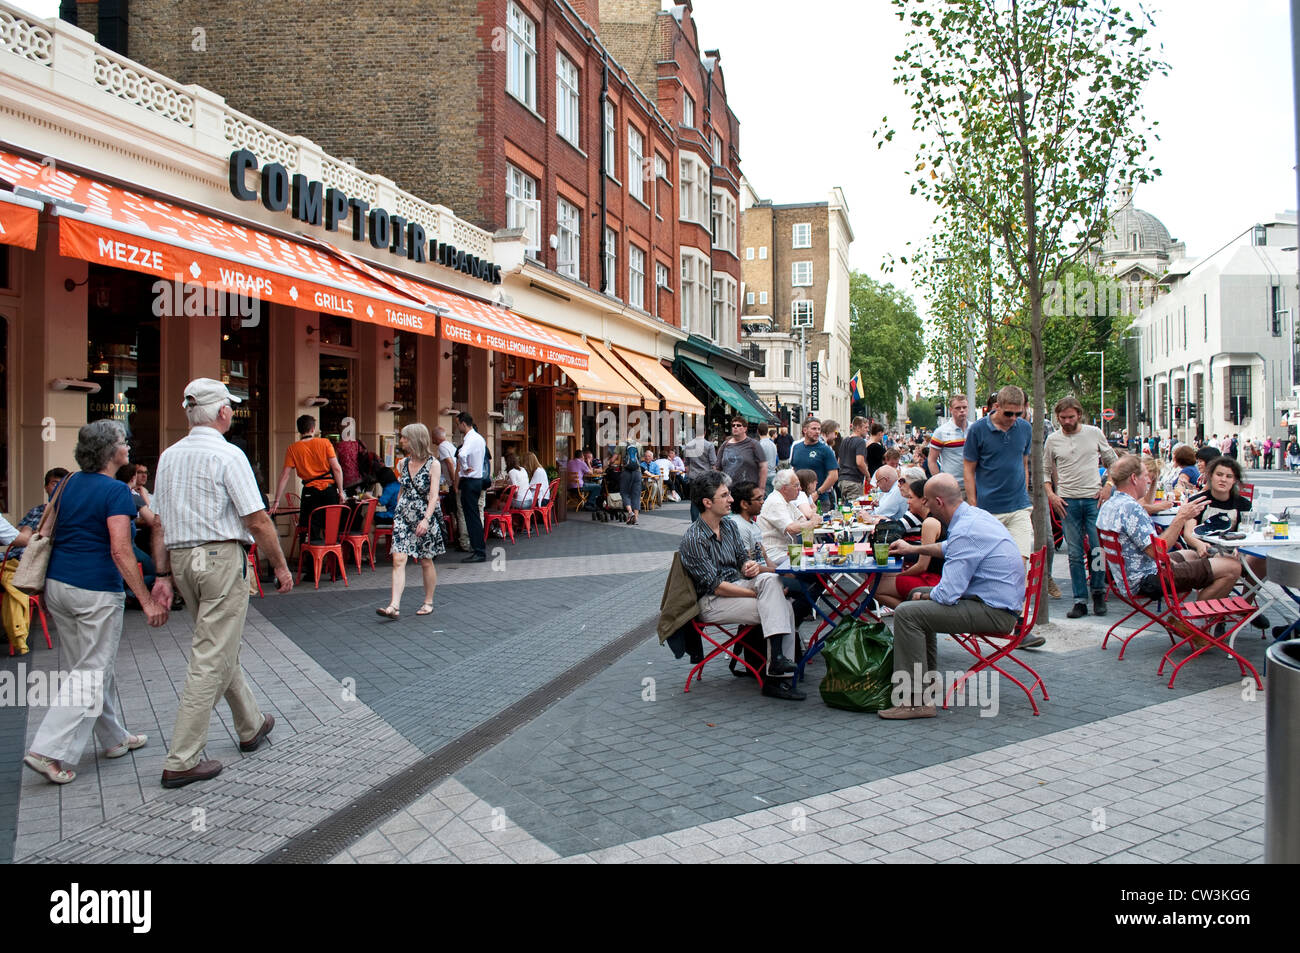 Pedestrianised Part Of Exhibition Road With Outdoor Cafes And Stock